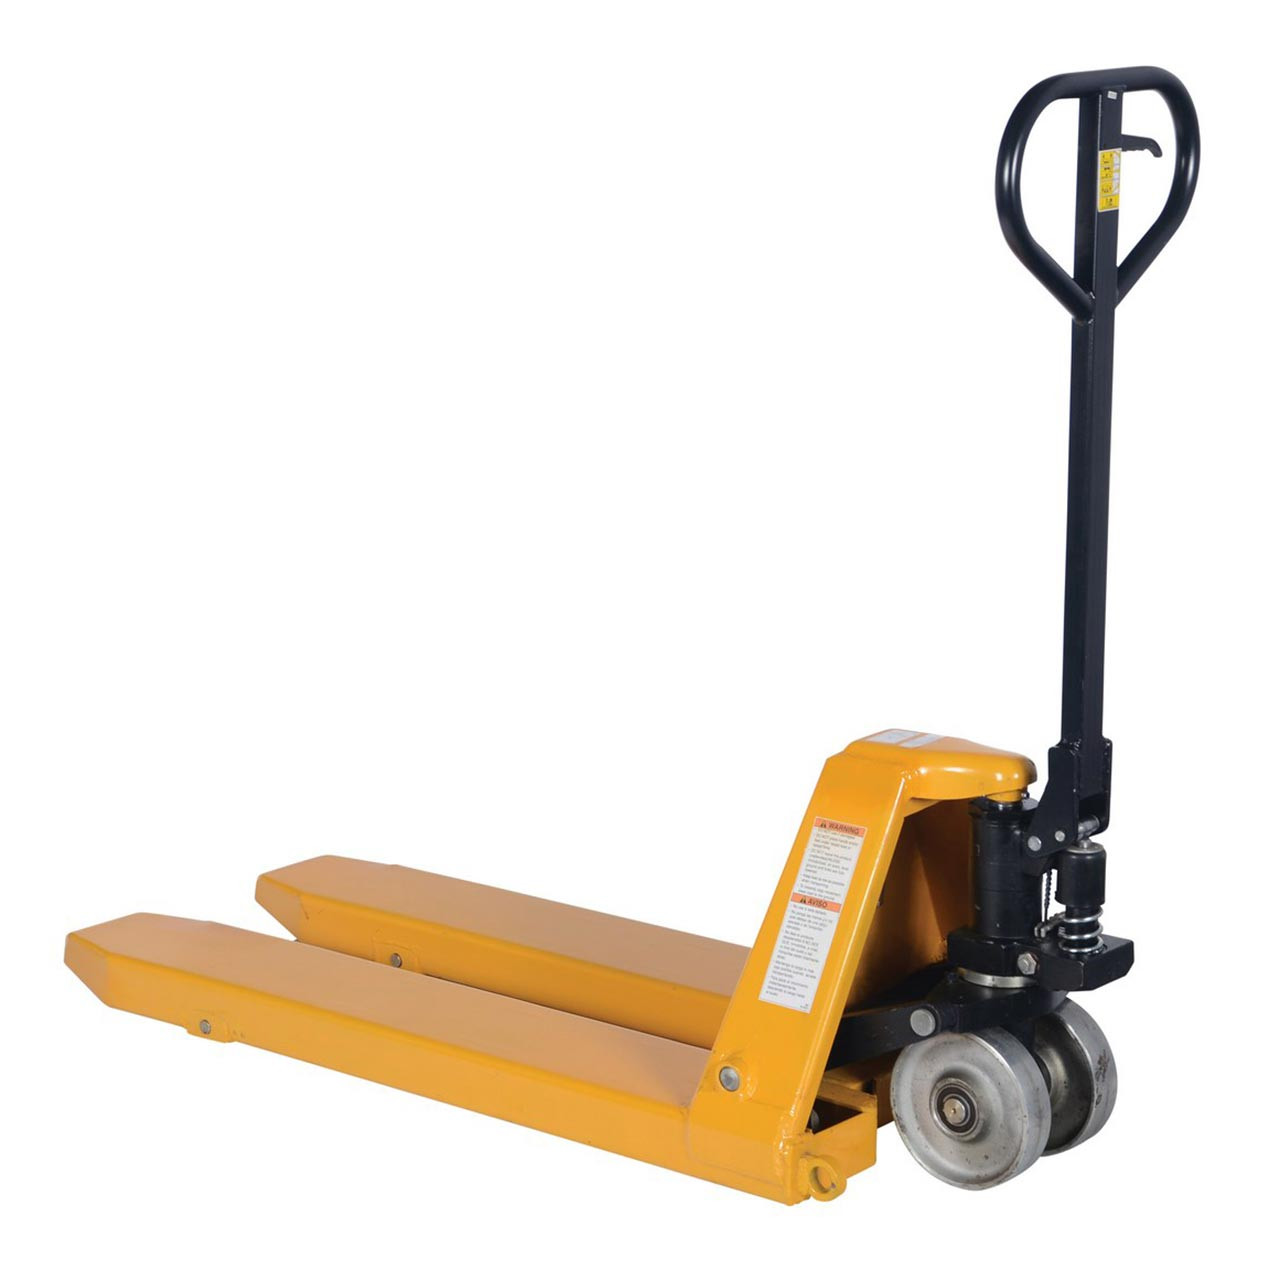 Pallet jack has additional tow loops for simple towing of the truck.